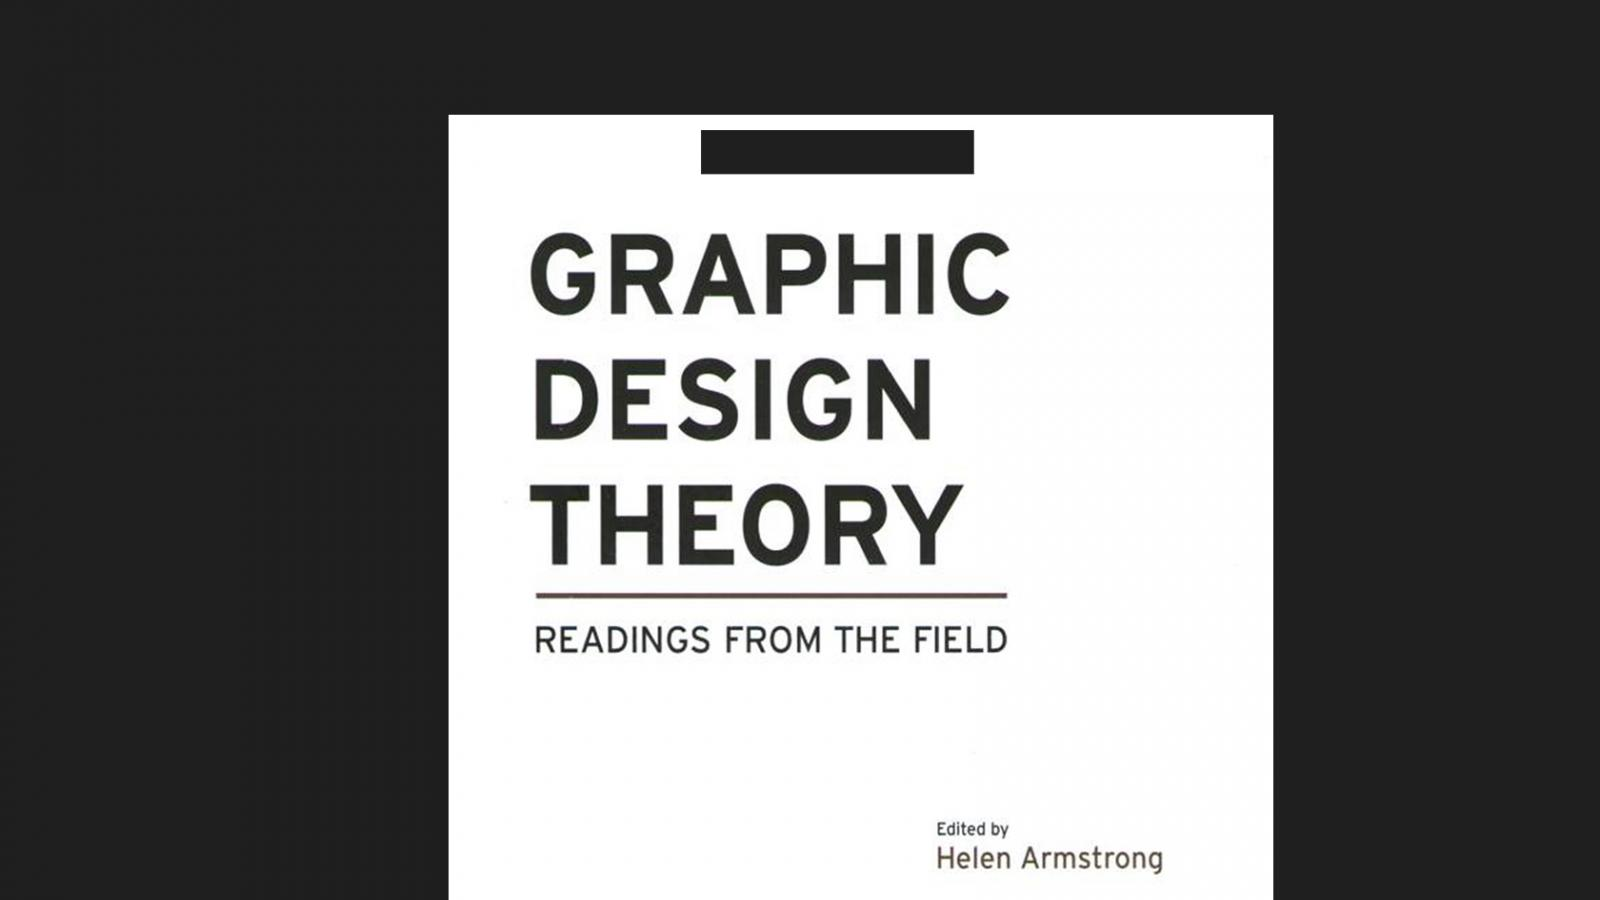 Graphic Design Theory: Readings from the Field - Book Suggestion